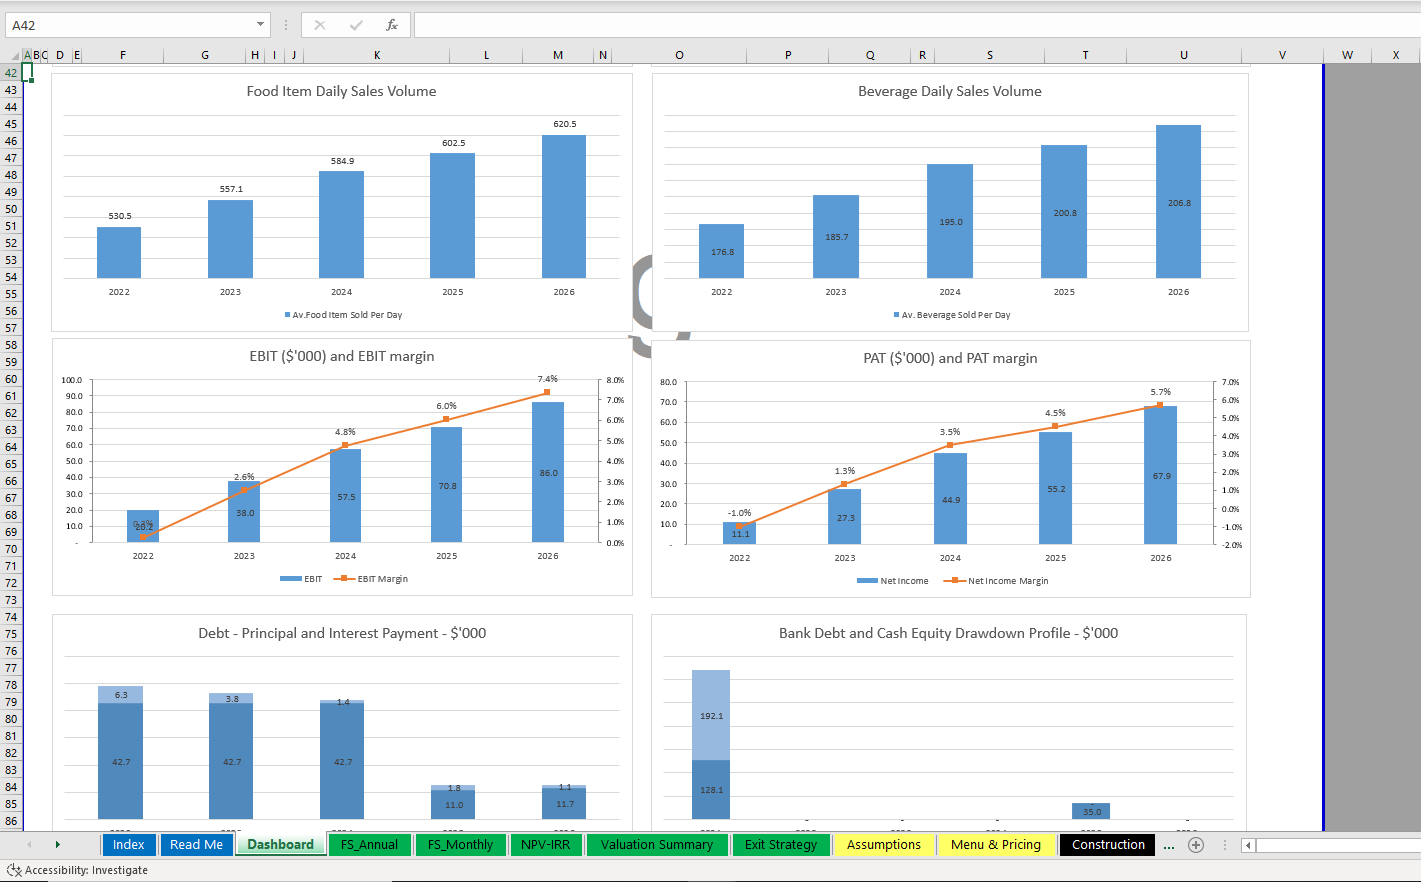 Bakery - 3 Statement Financial Model with 5 years Monthly Projection and Valuation